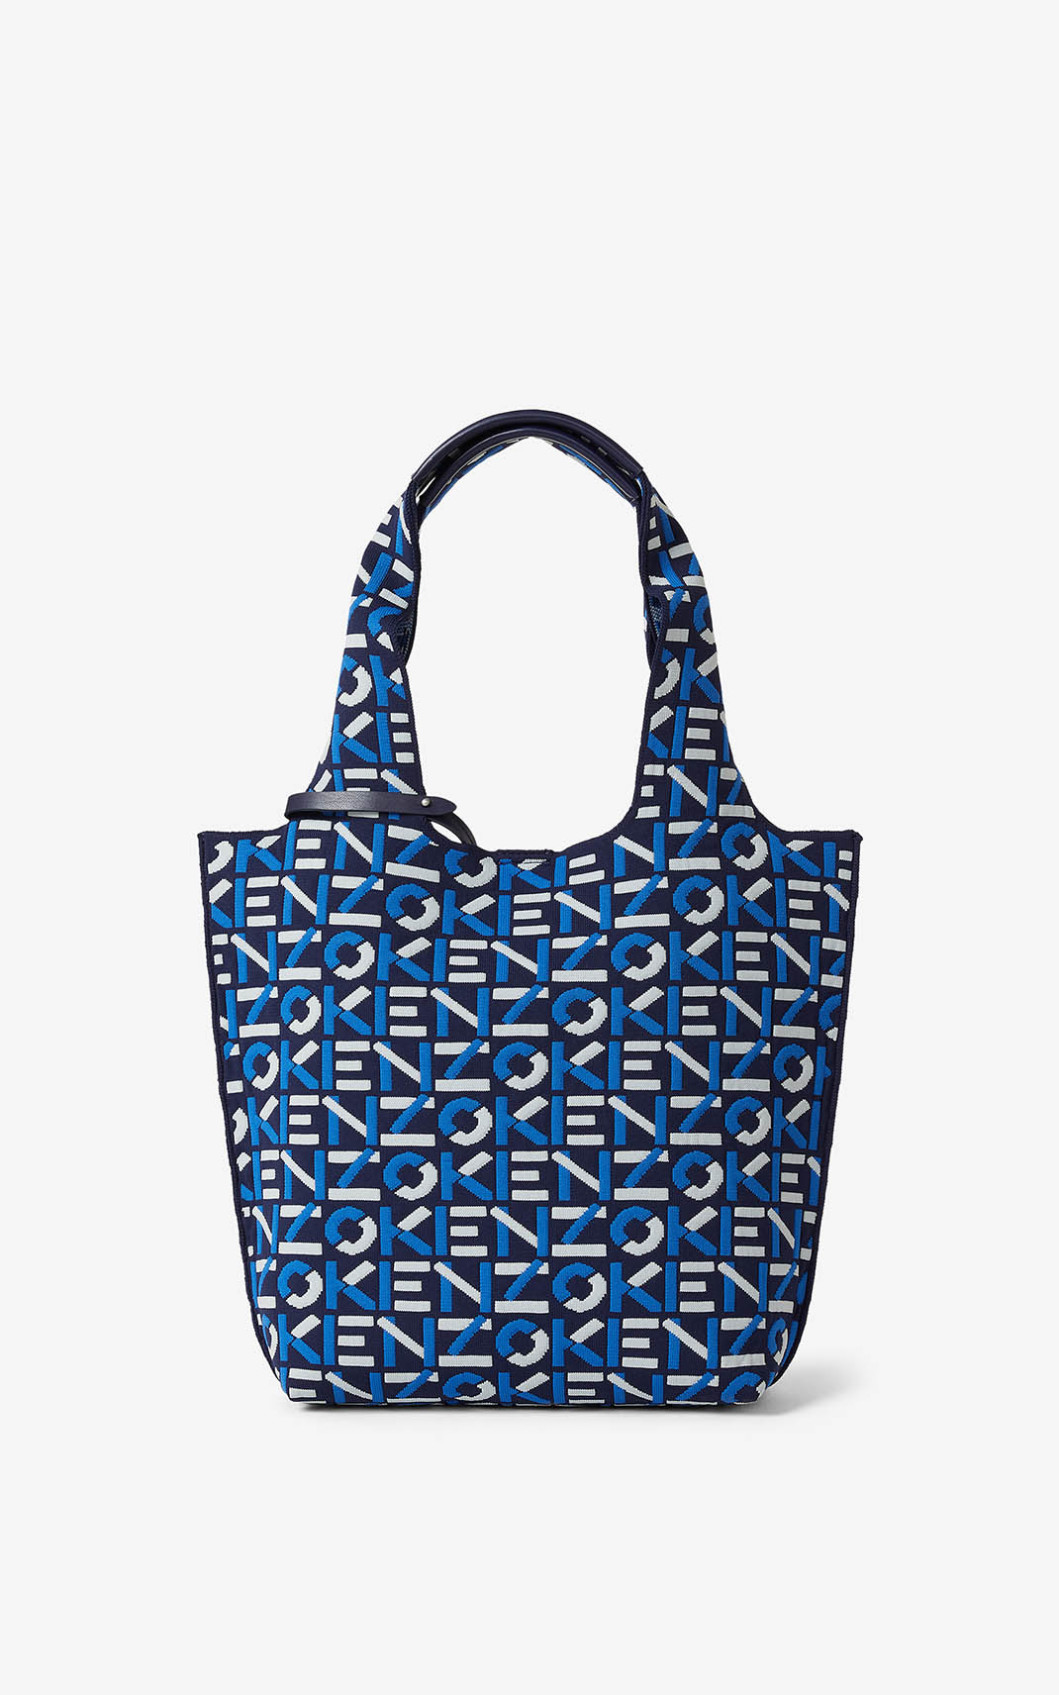 Kenzo Skuba Small Monogram Tote Bag In Blu